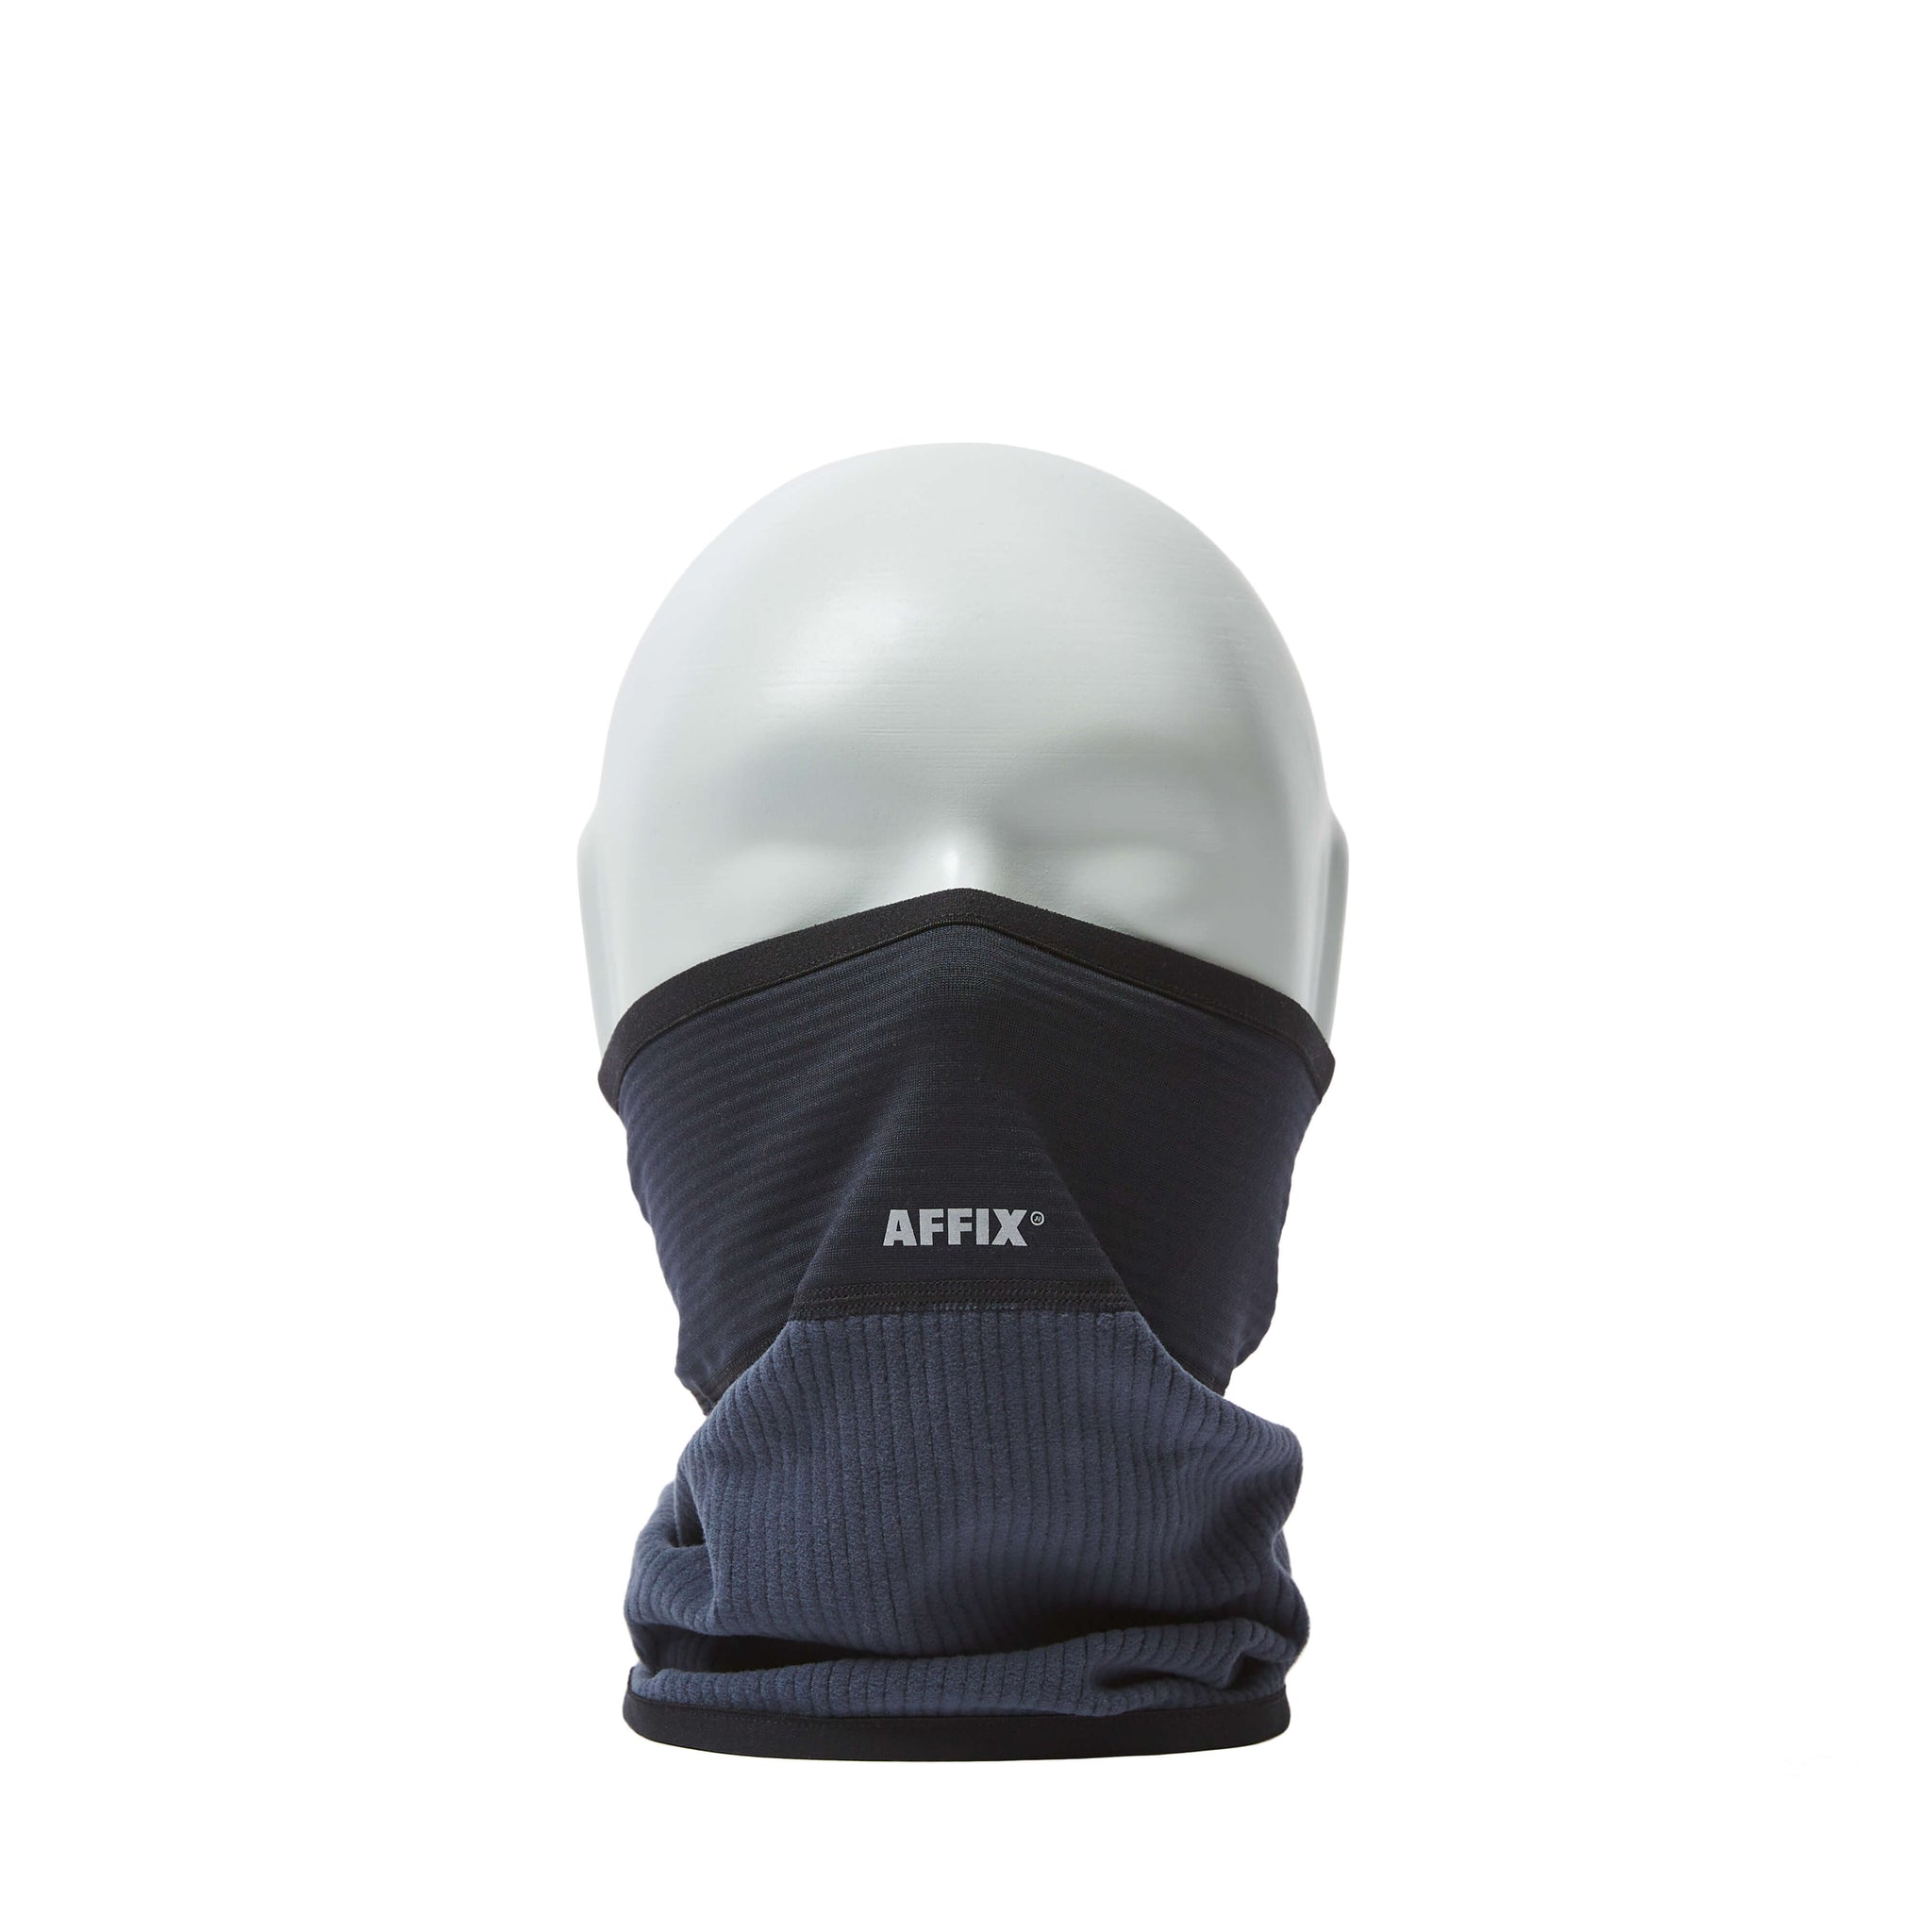 AFFIX WORKS AFFX WRKS NECK GAITER BLACK